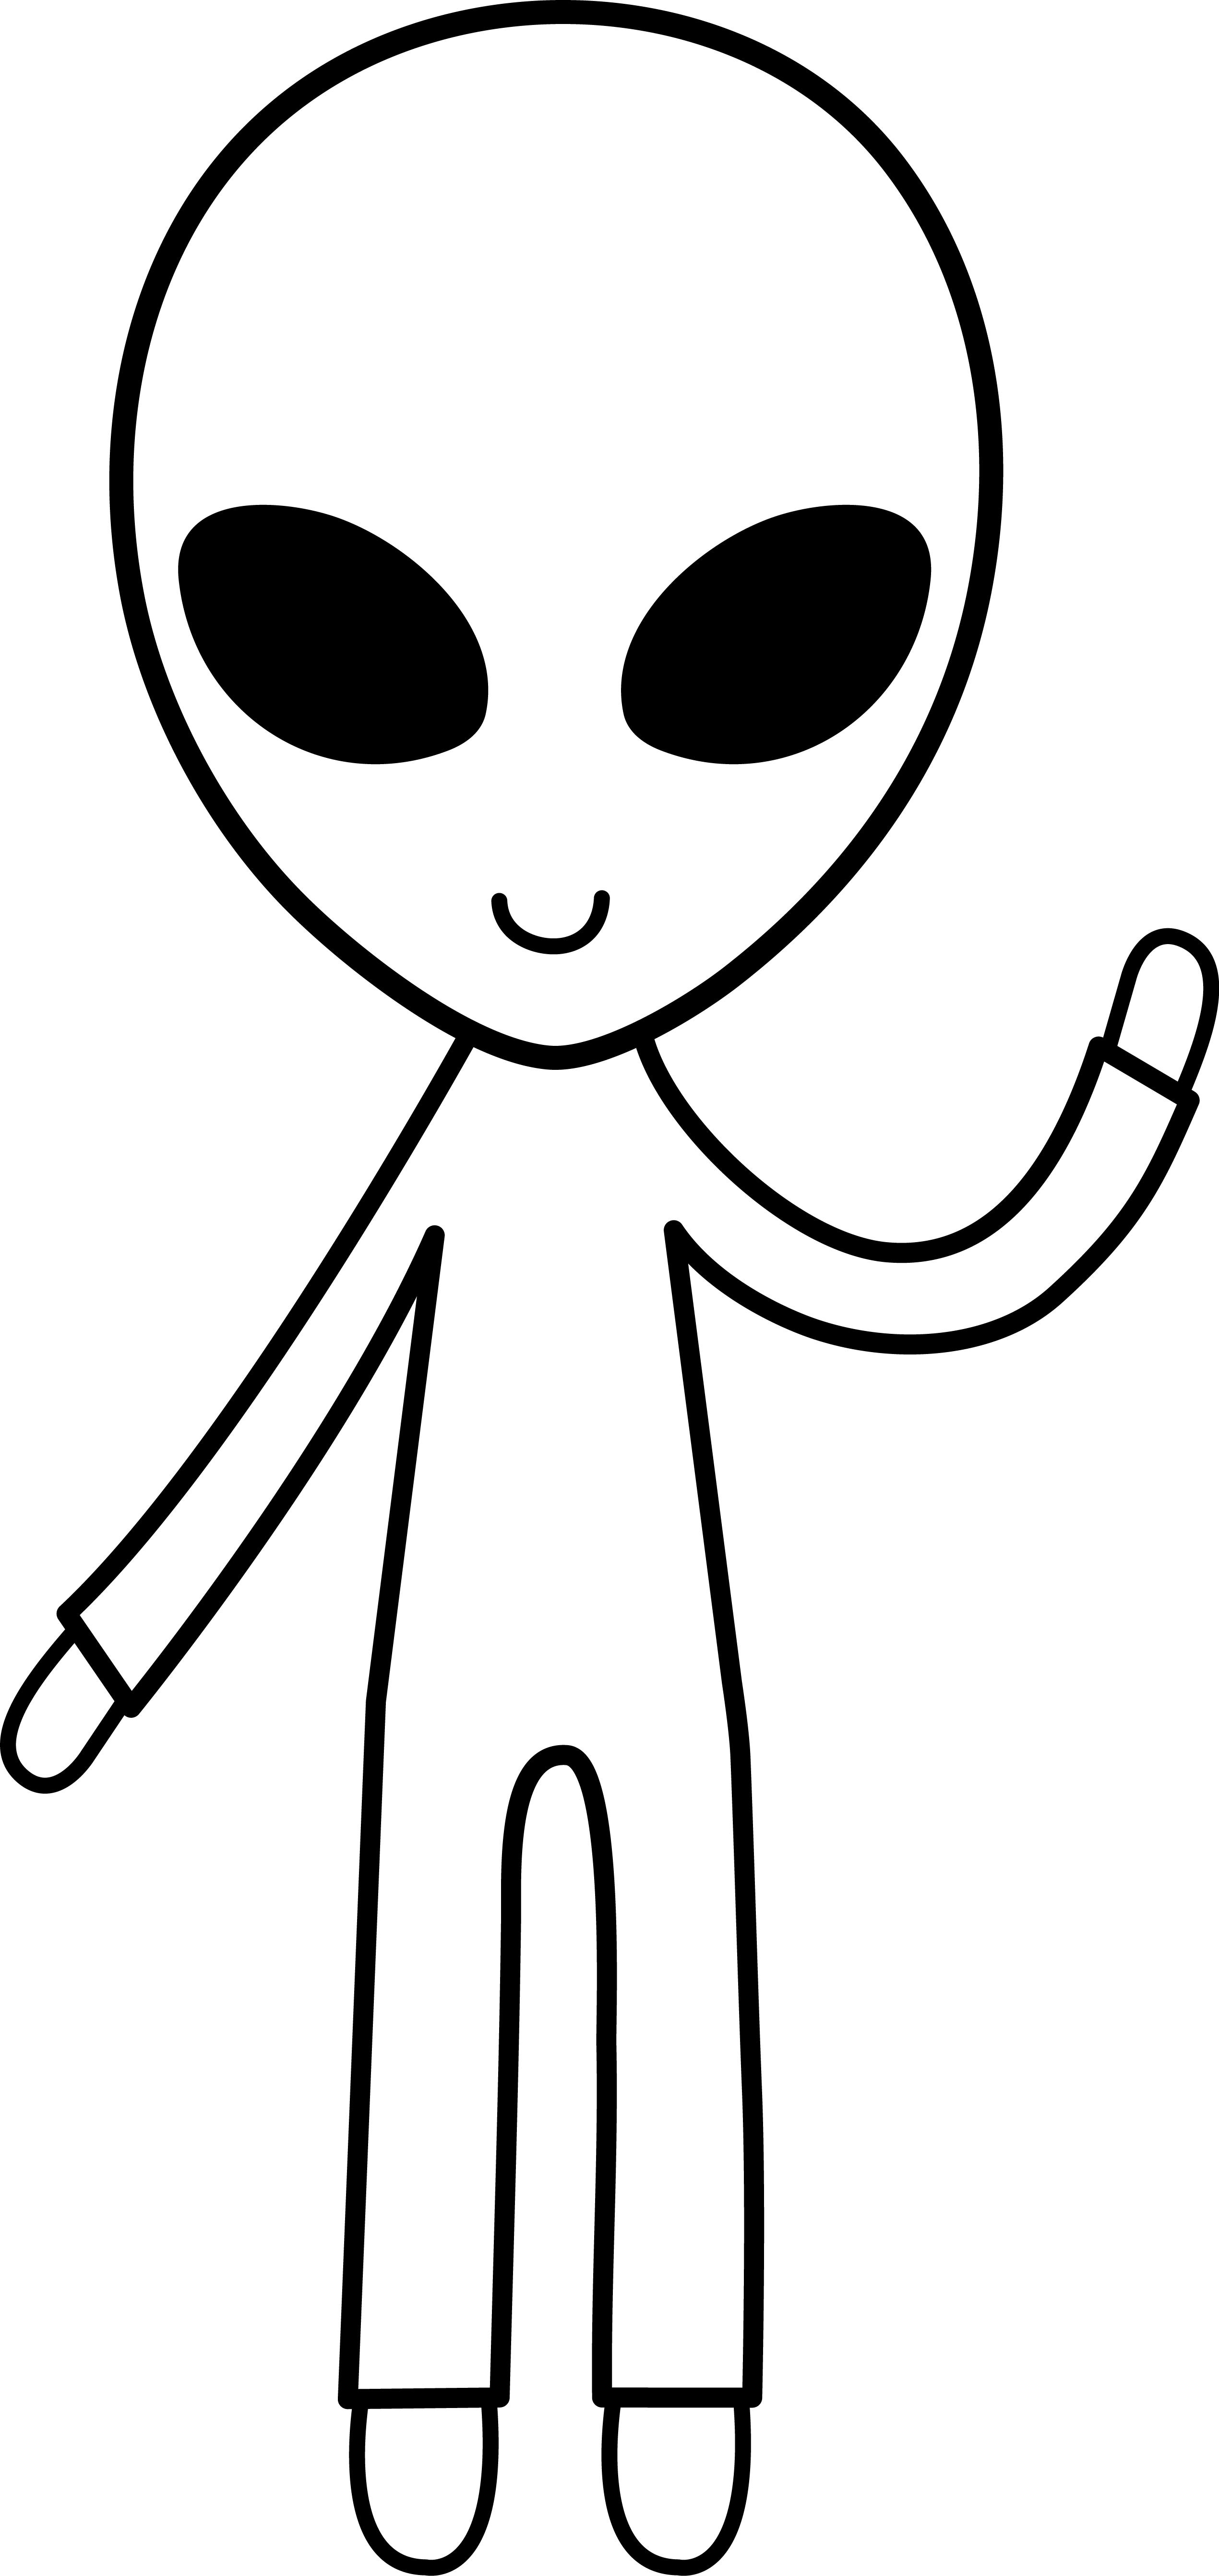 Alien clip art black and white.